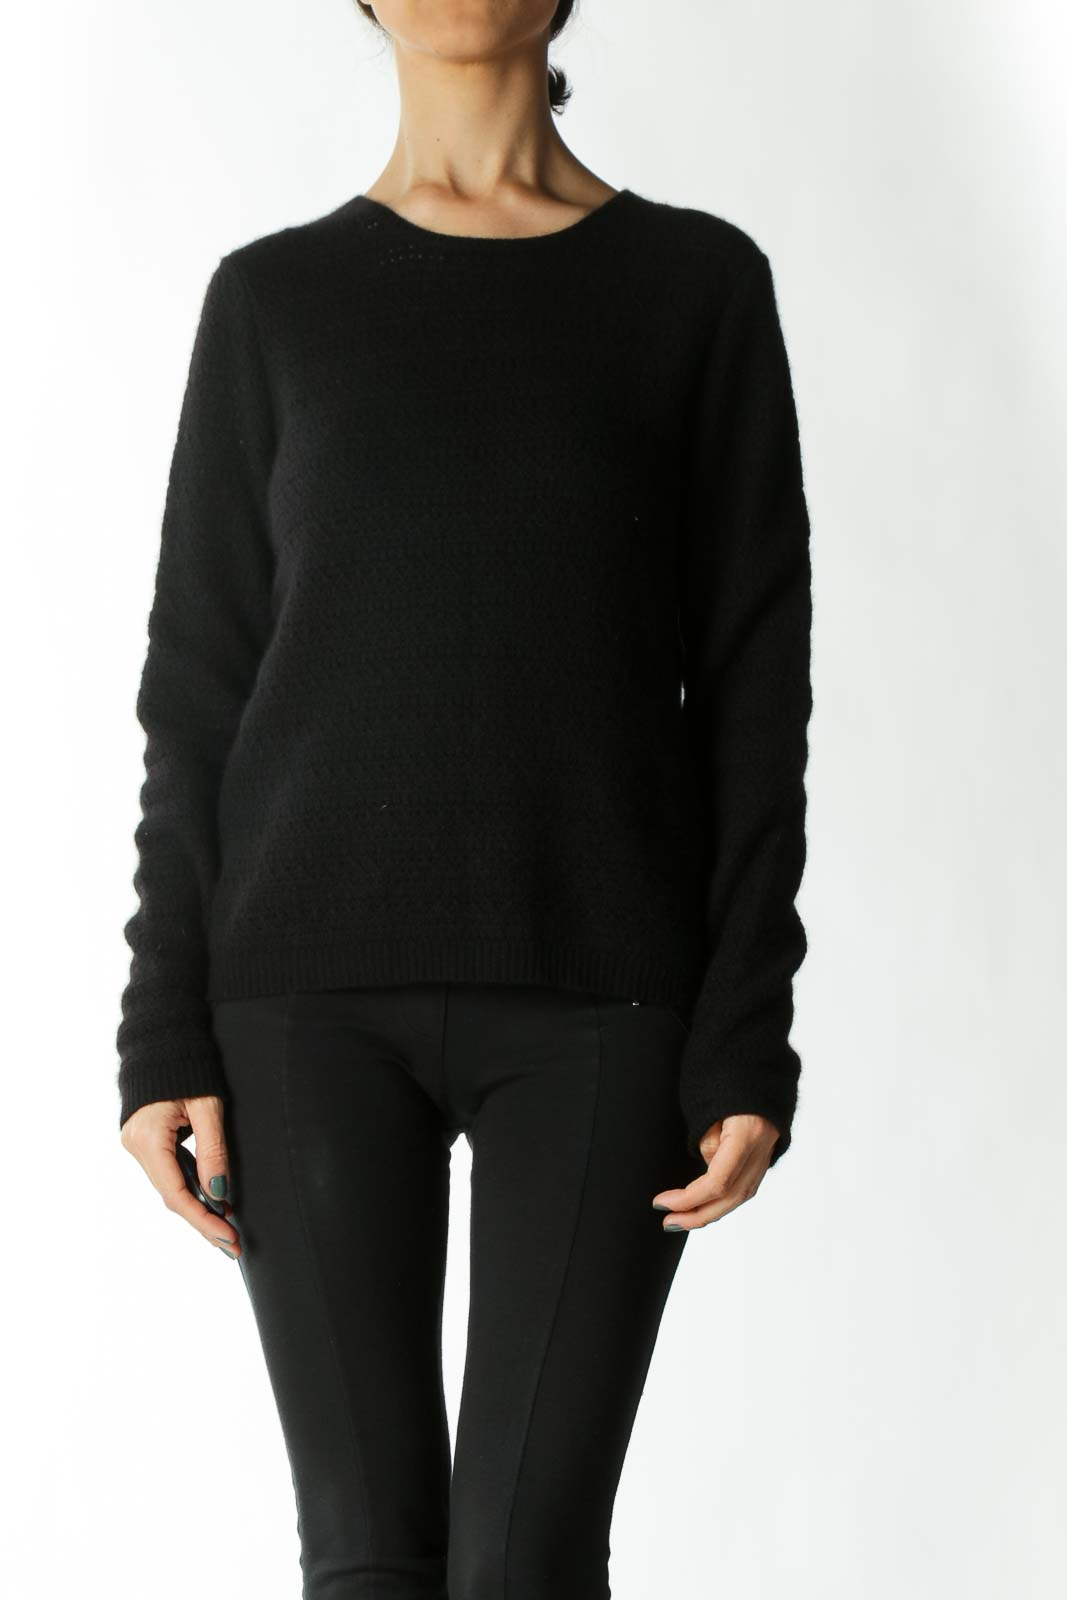 Black Cashmere Crocheted Sweater